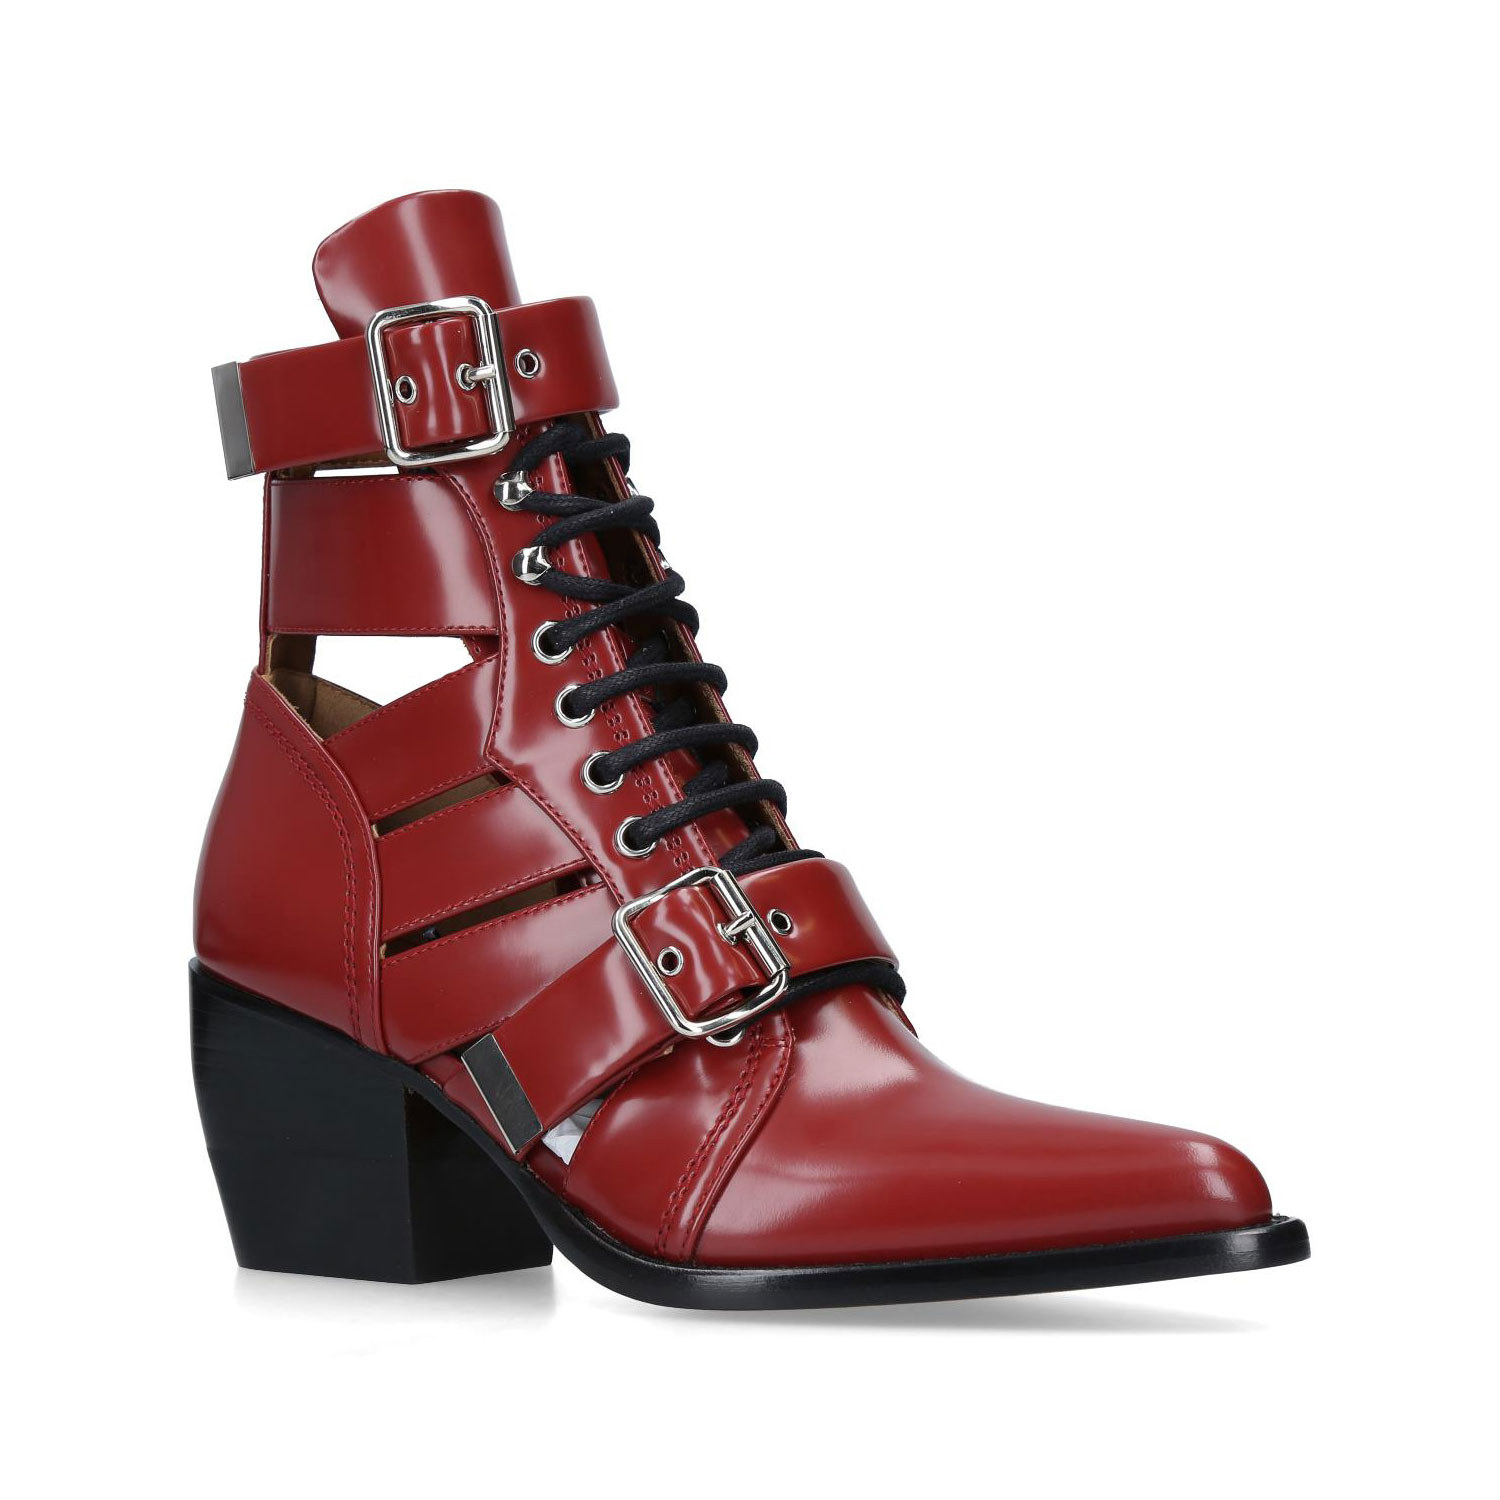 Chloe Rylee Lace-up Boots